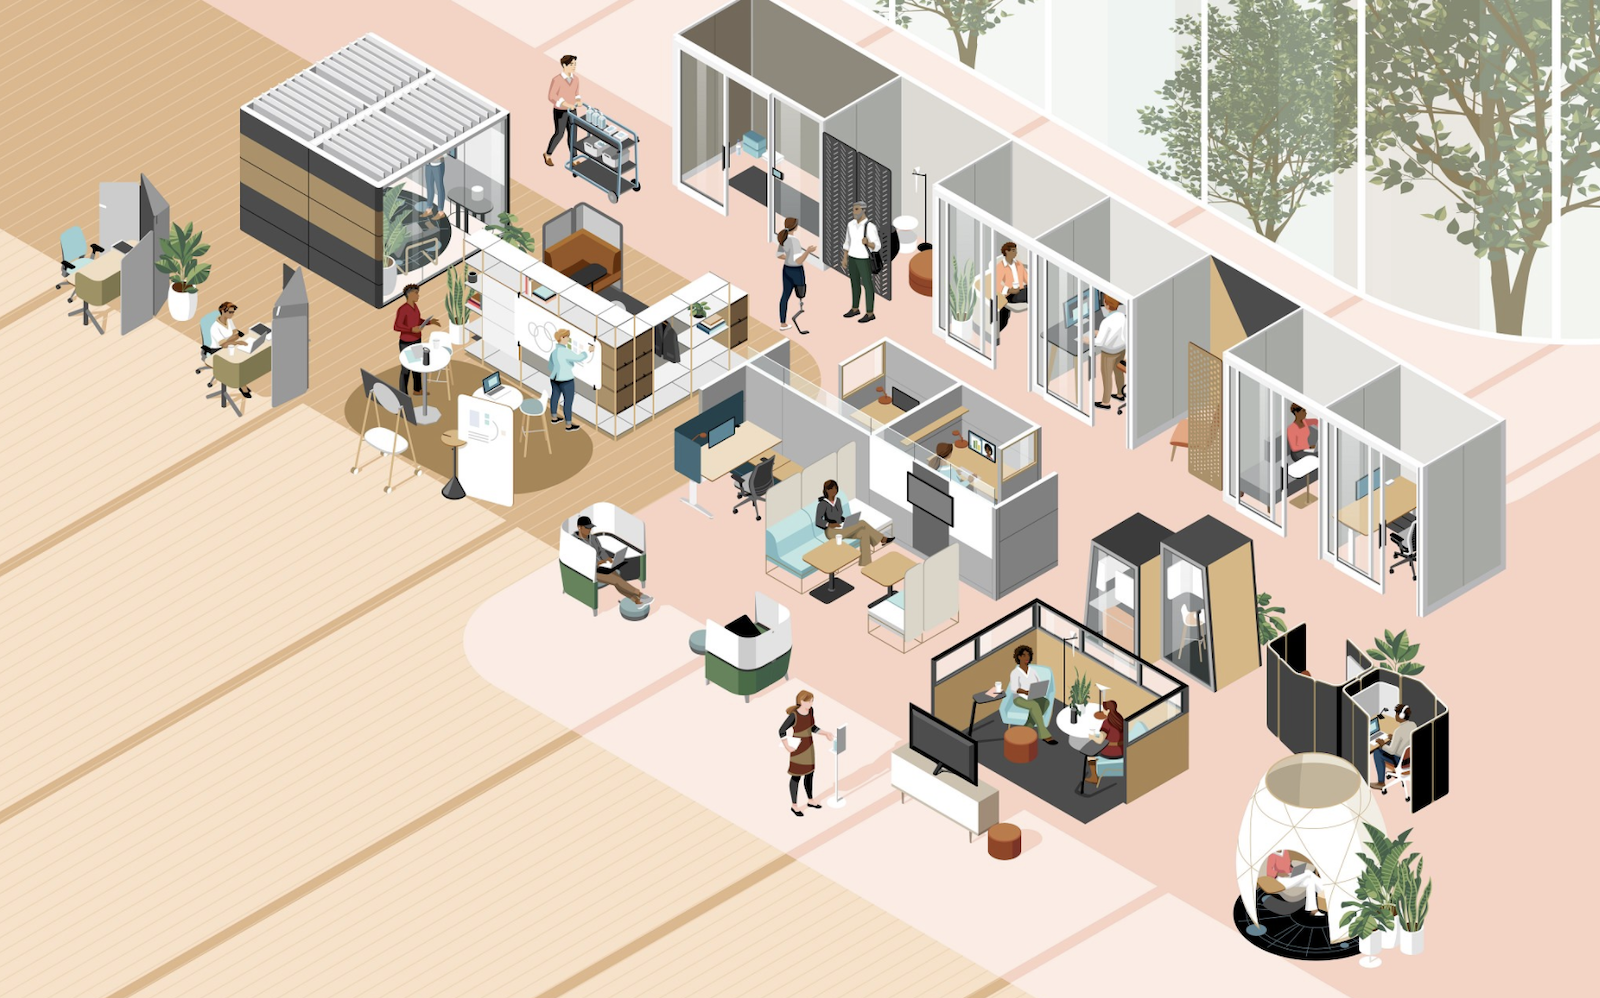 What the post pandemic workplace will look like according to Steelcase